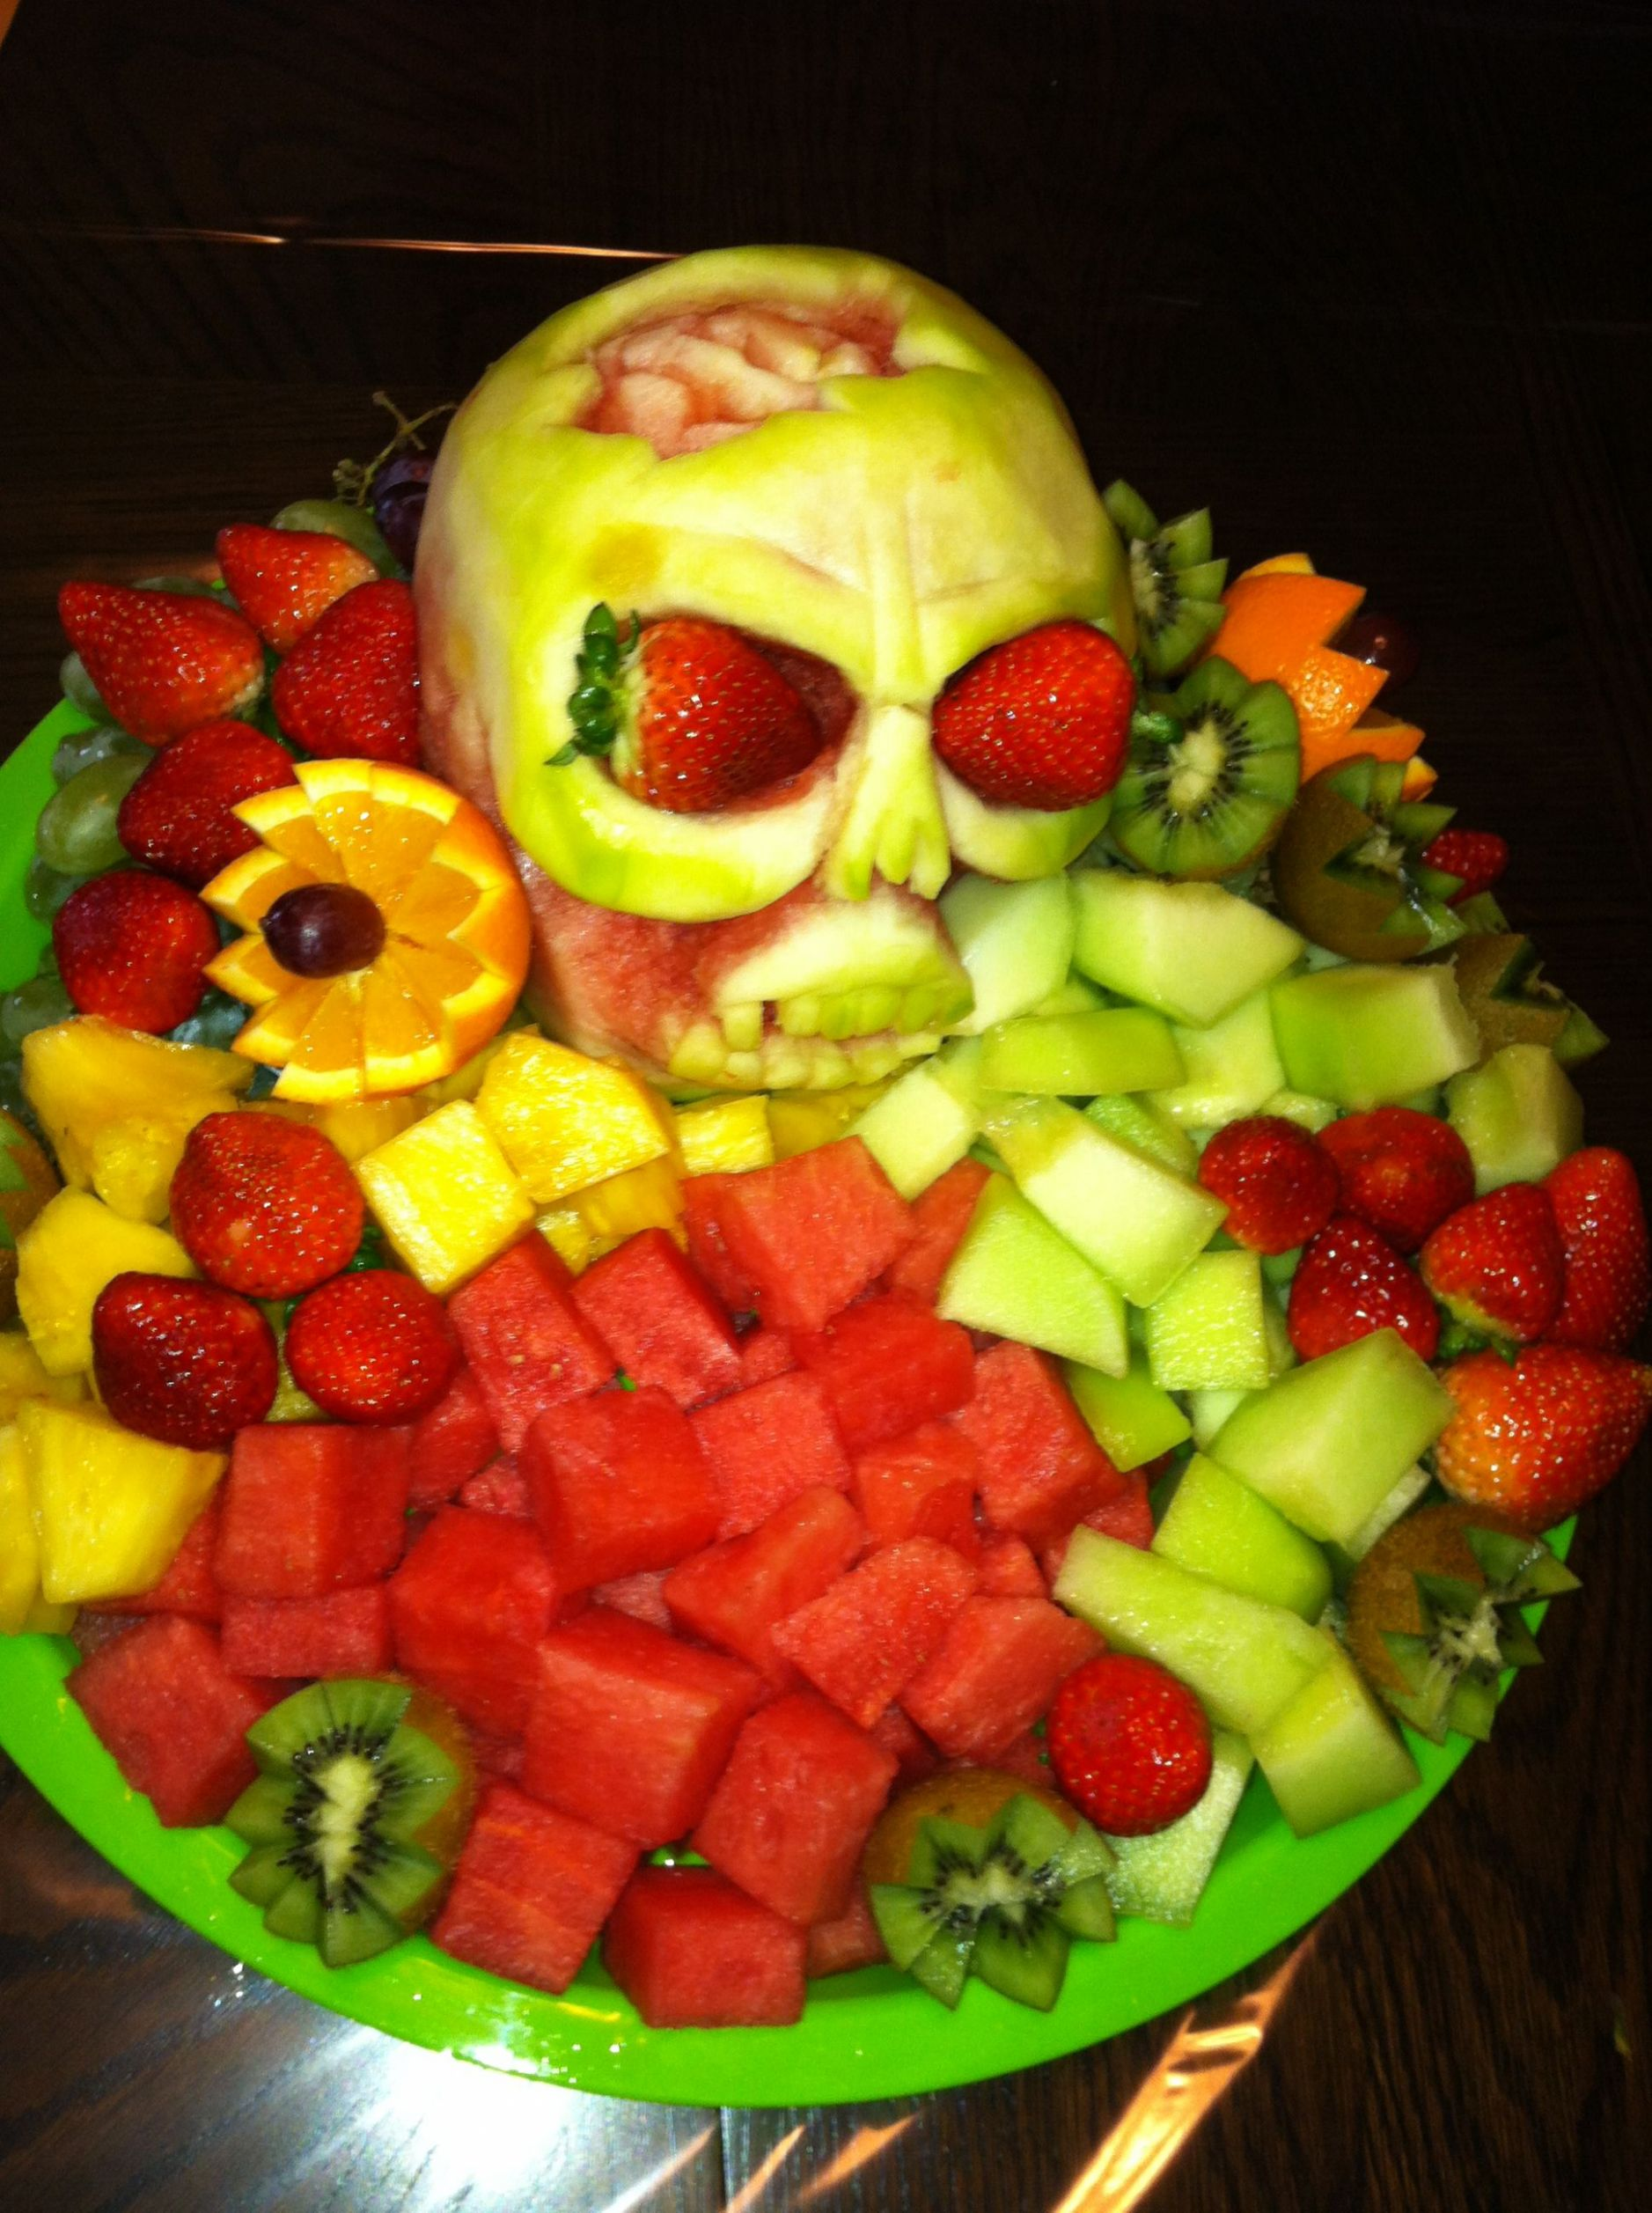 Halloween fruit carving (With images) | Food carving, Fruit ...